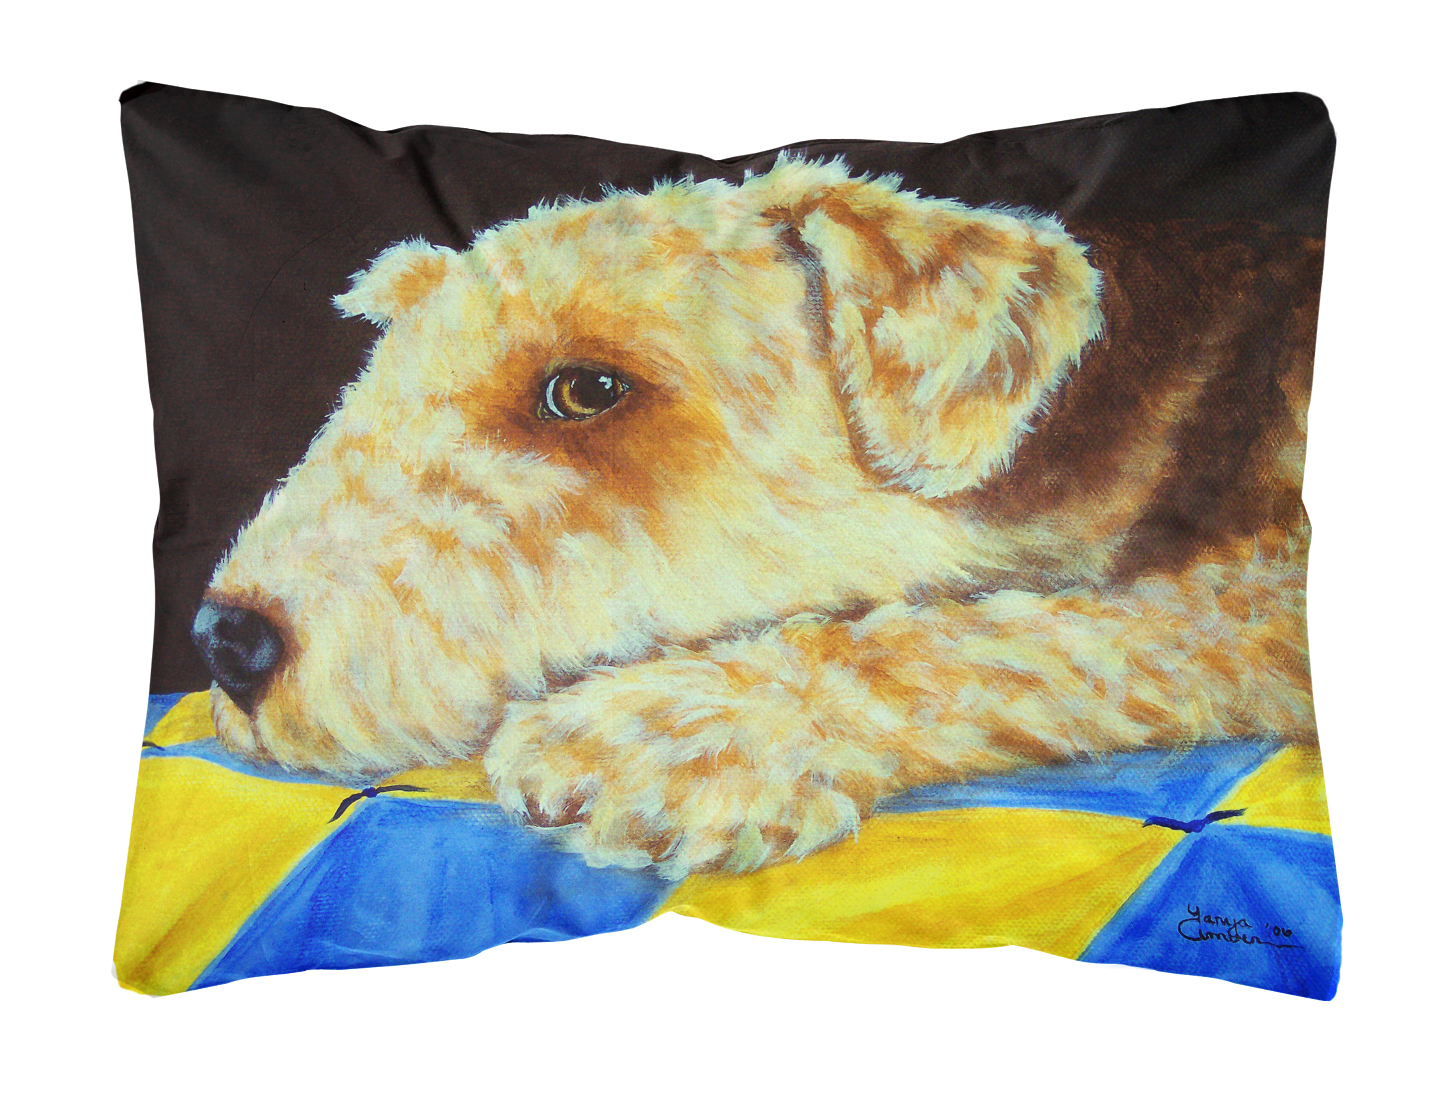 Airedale Terrier Momma's Quilt Fabric Decorative Pillow by Caroline's Treasures